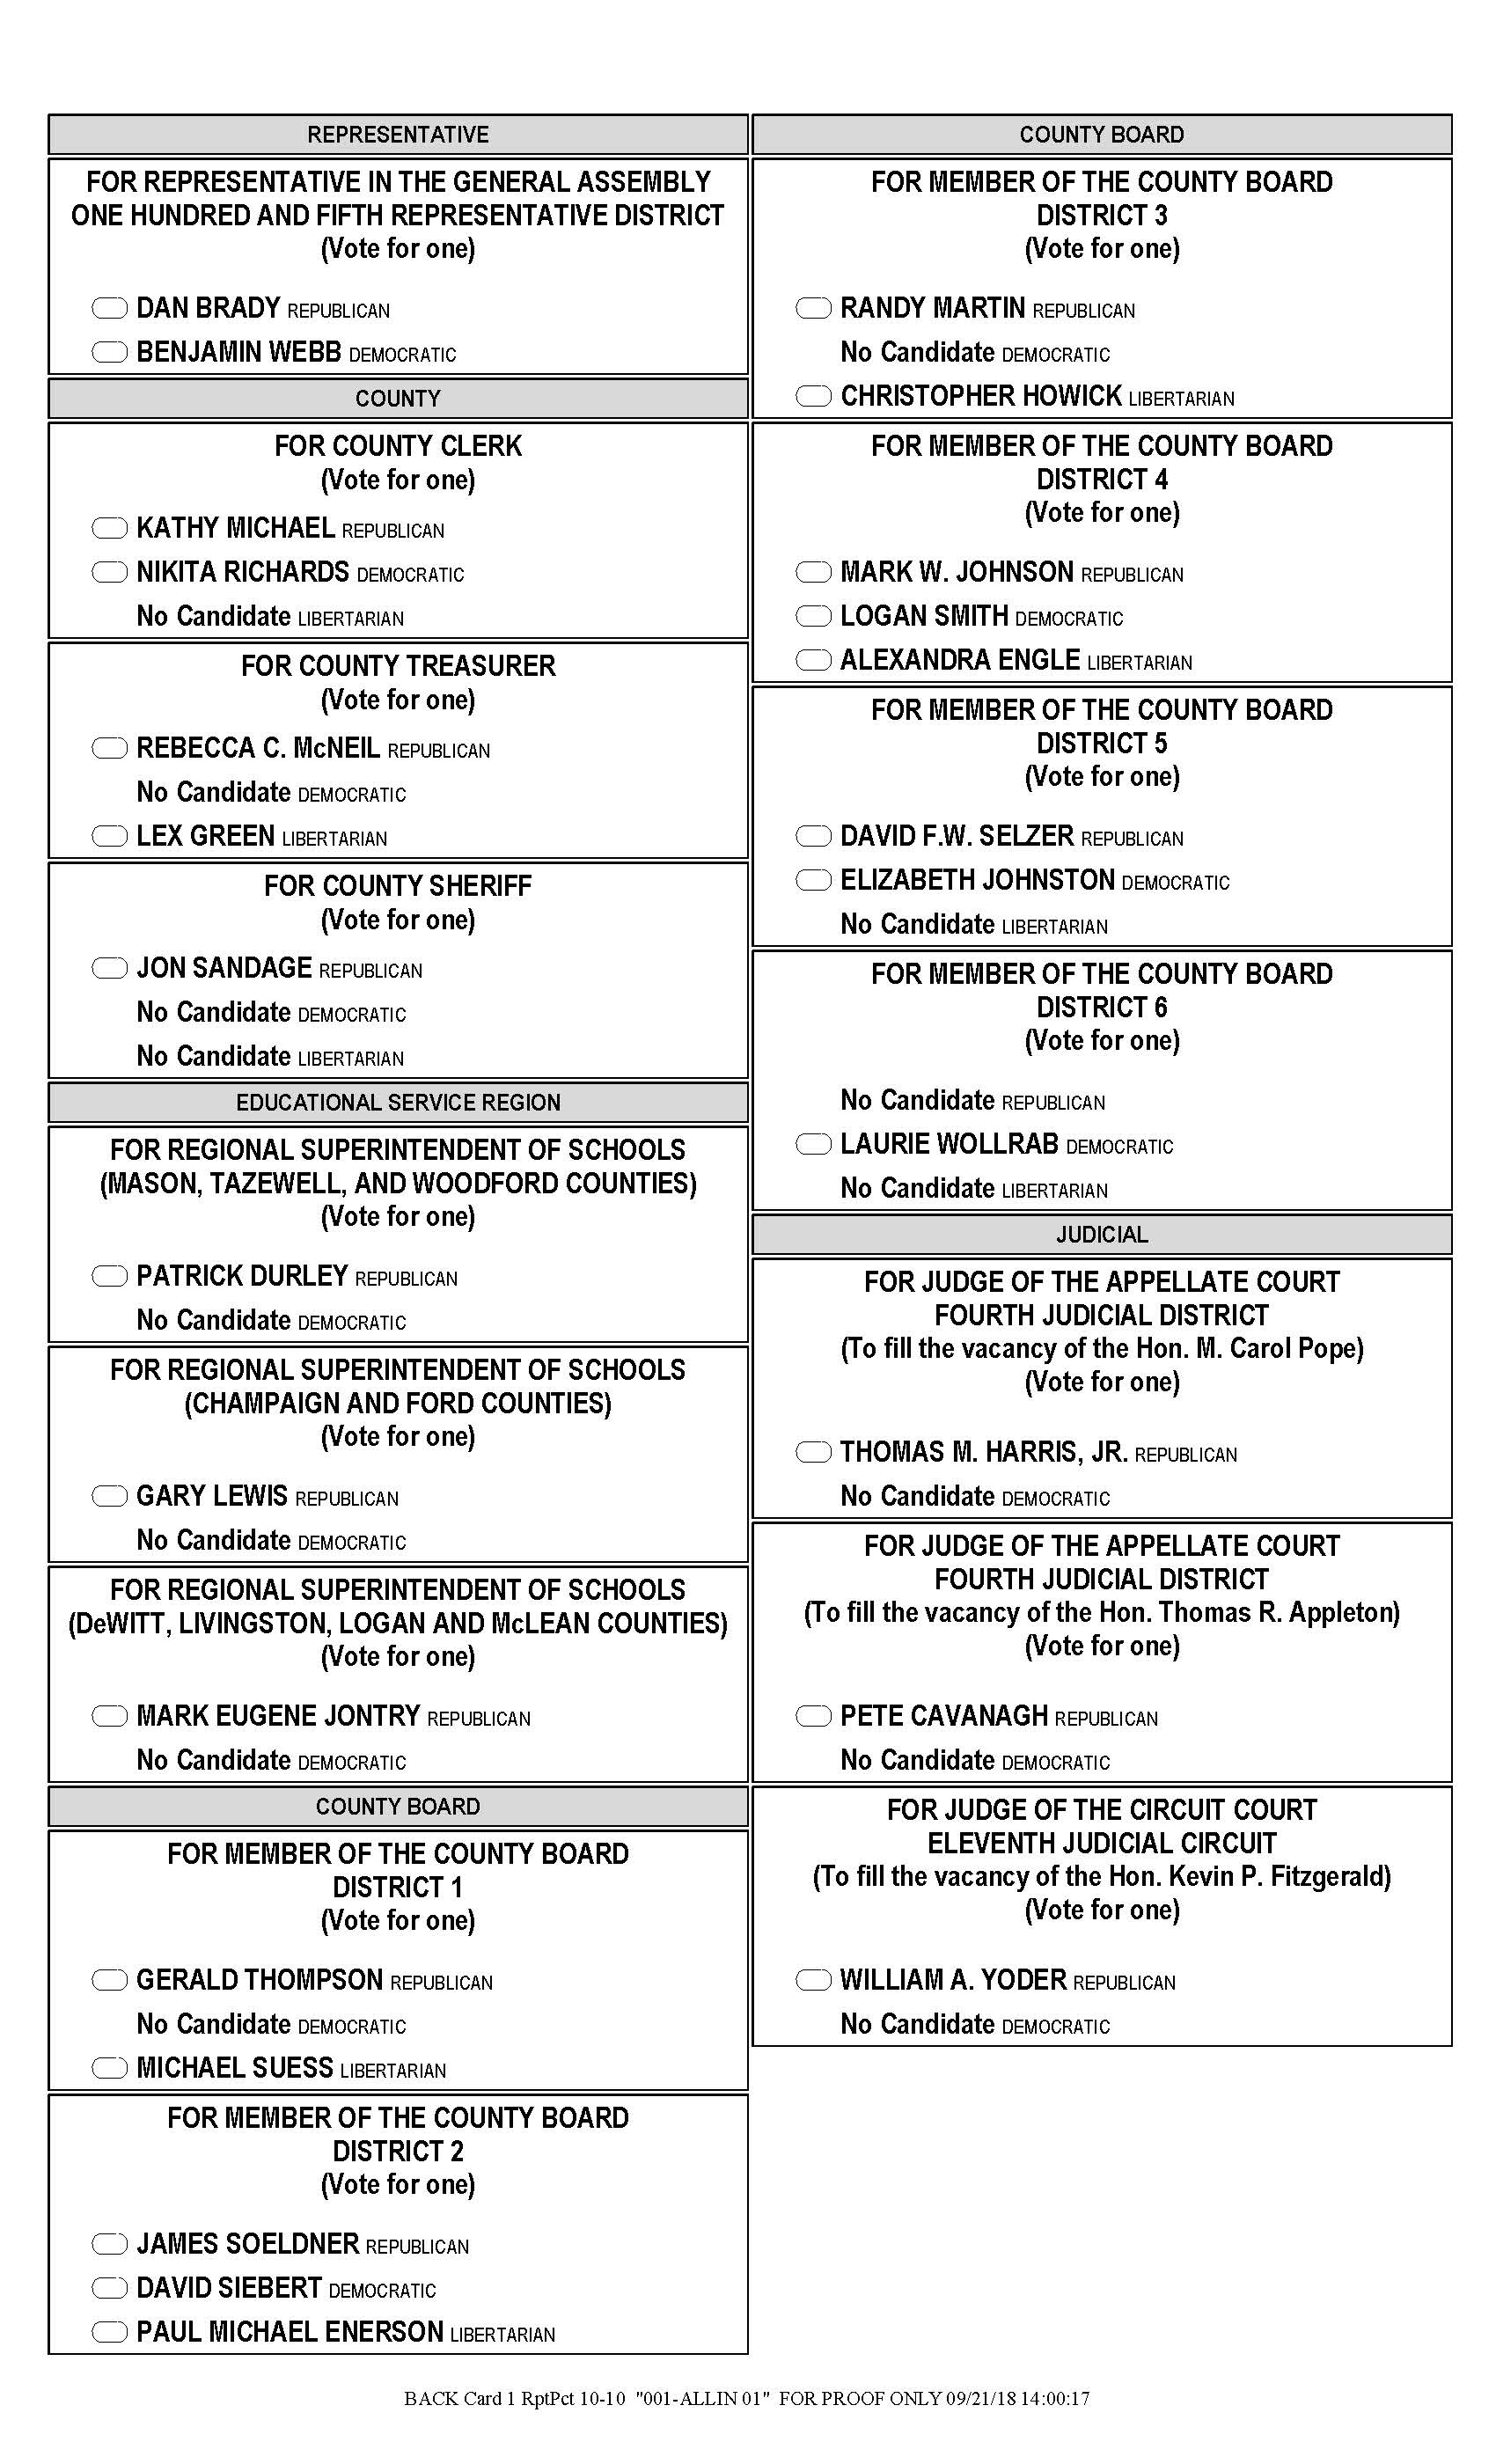 Sample ballots 2018 mclean county republican party.